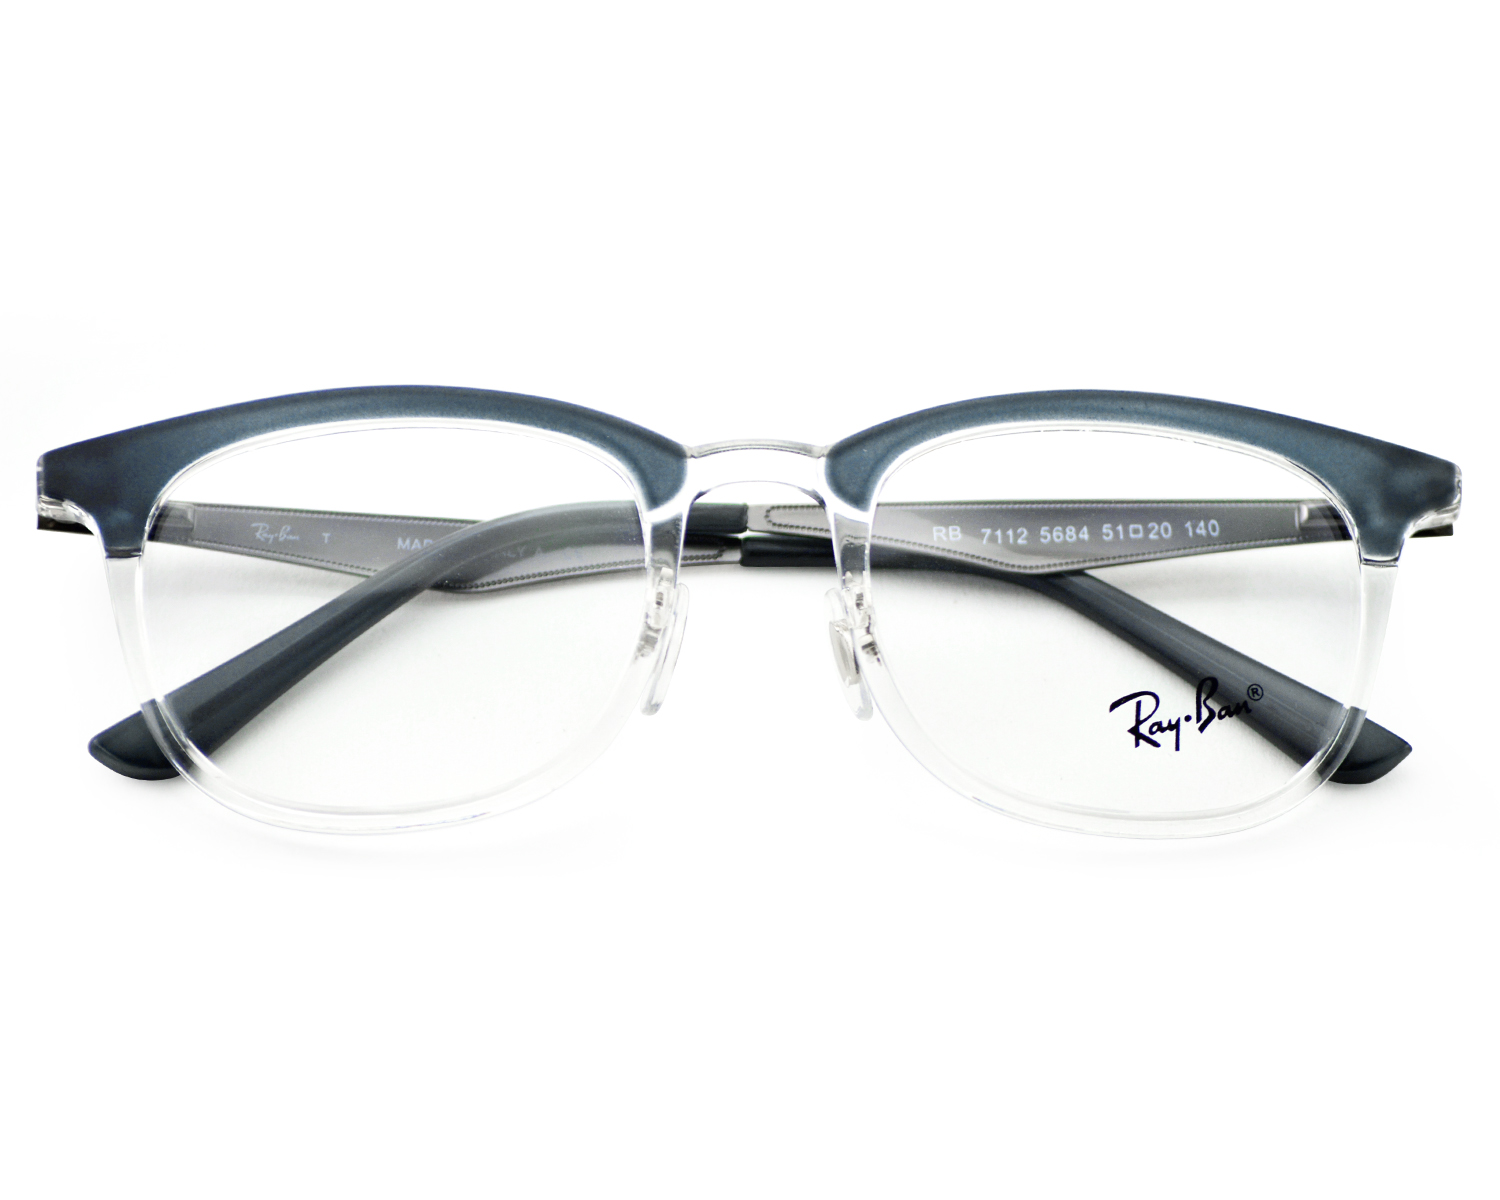 8421d06a91 Ray-Ban RB7112 5684 Blue Transparent Frame Clear Glass Lenses Unisex  Optical Glasses 51mm